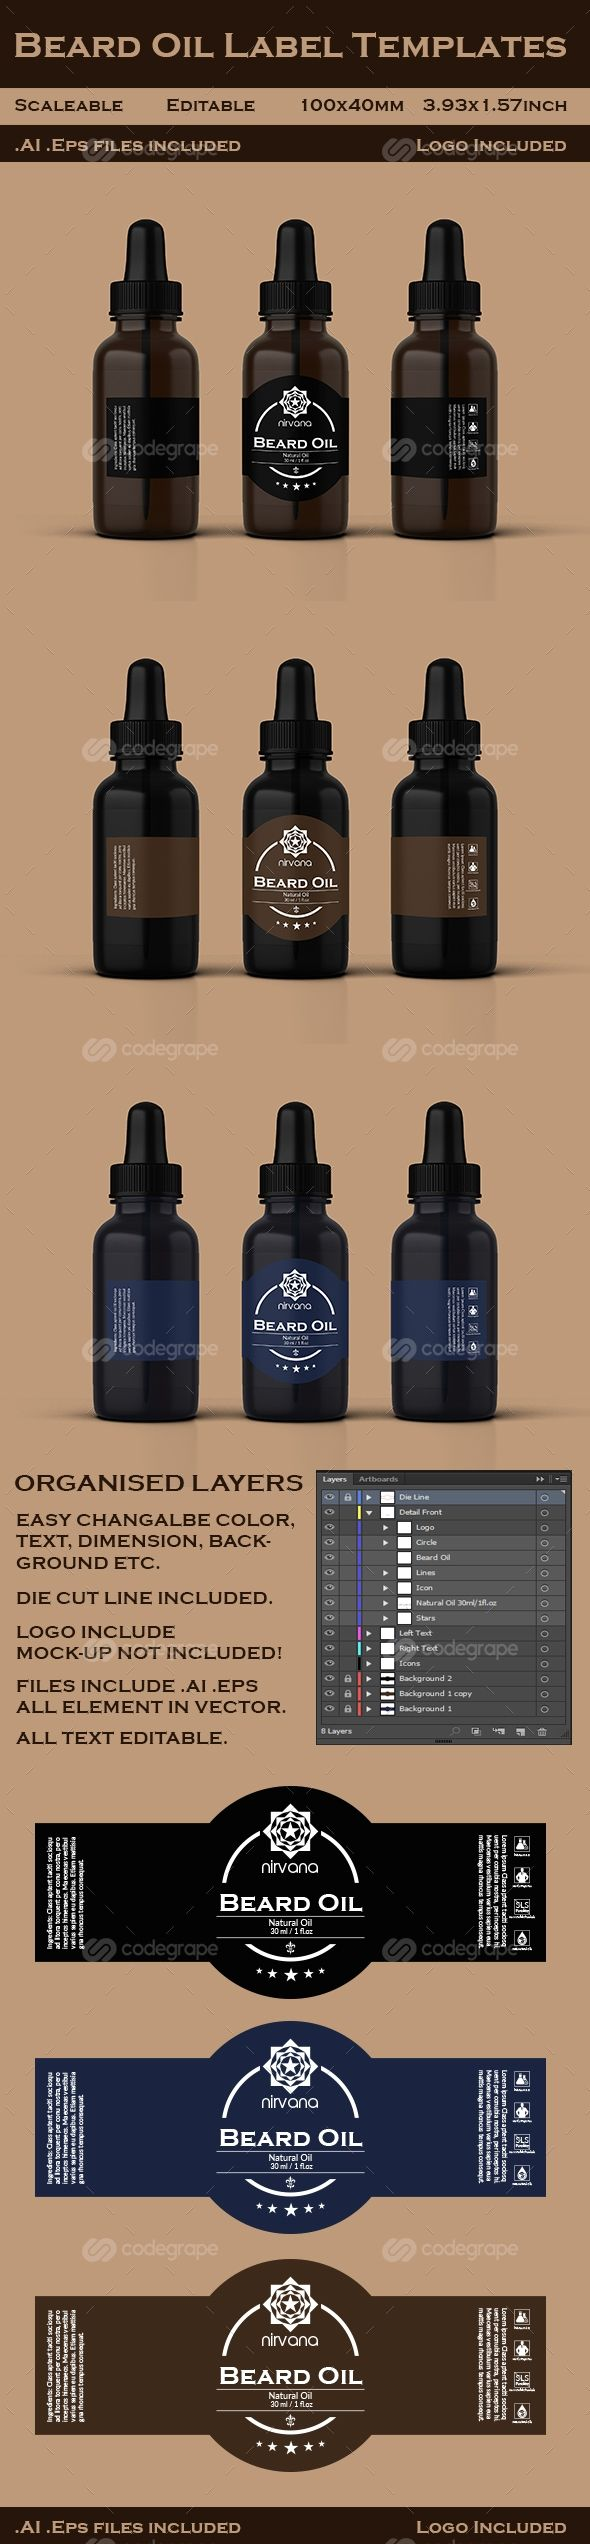 Beard Oil Label Templates On Codegrape More Info HttpsWww